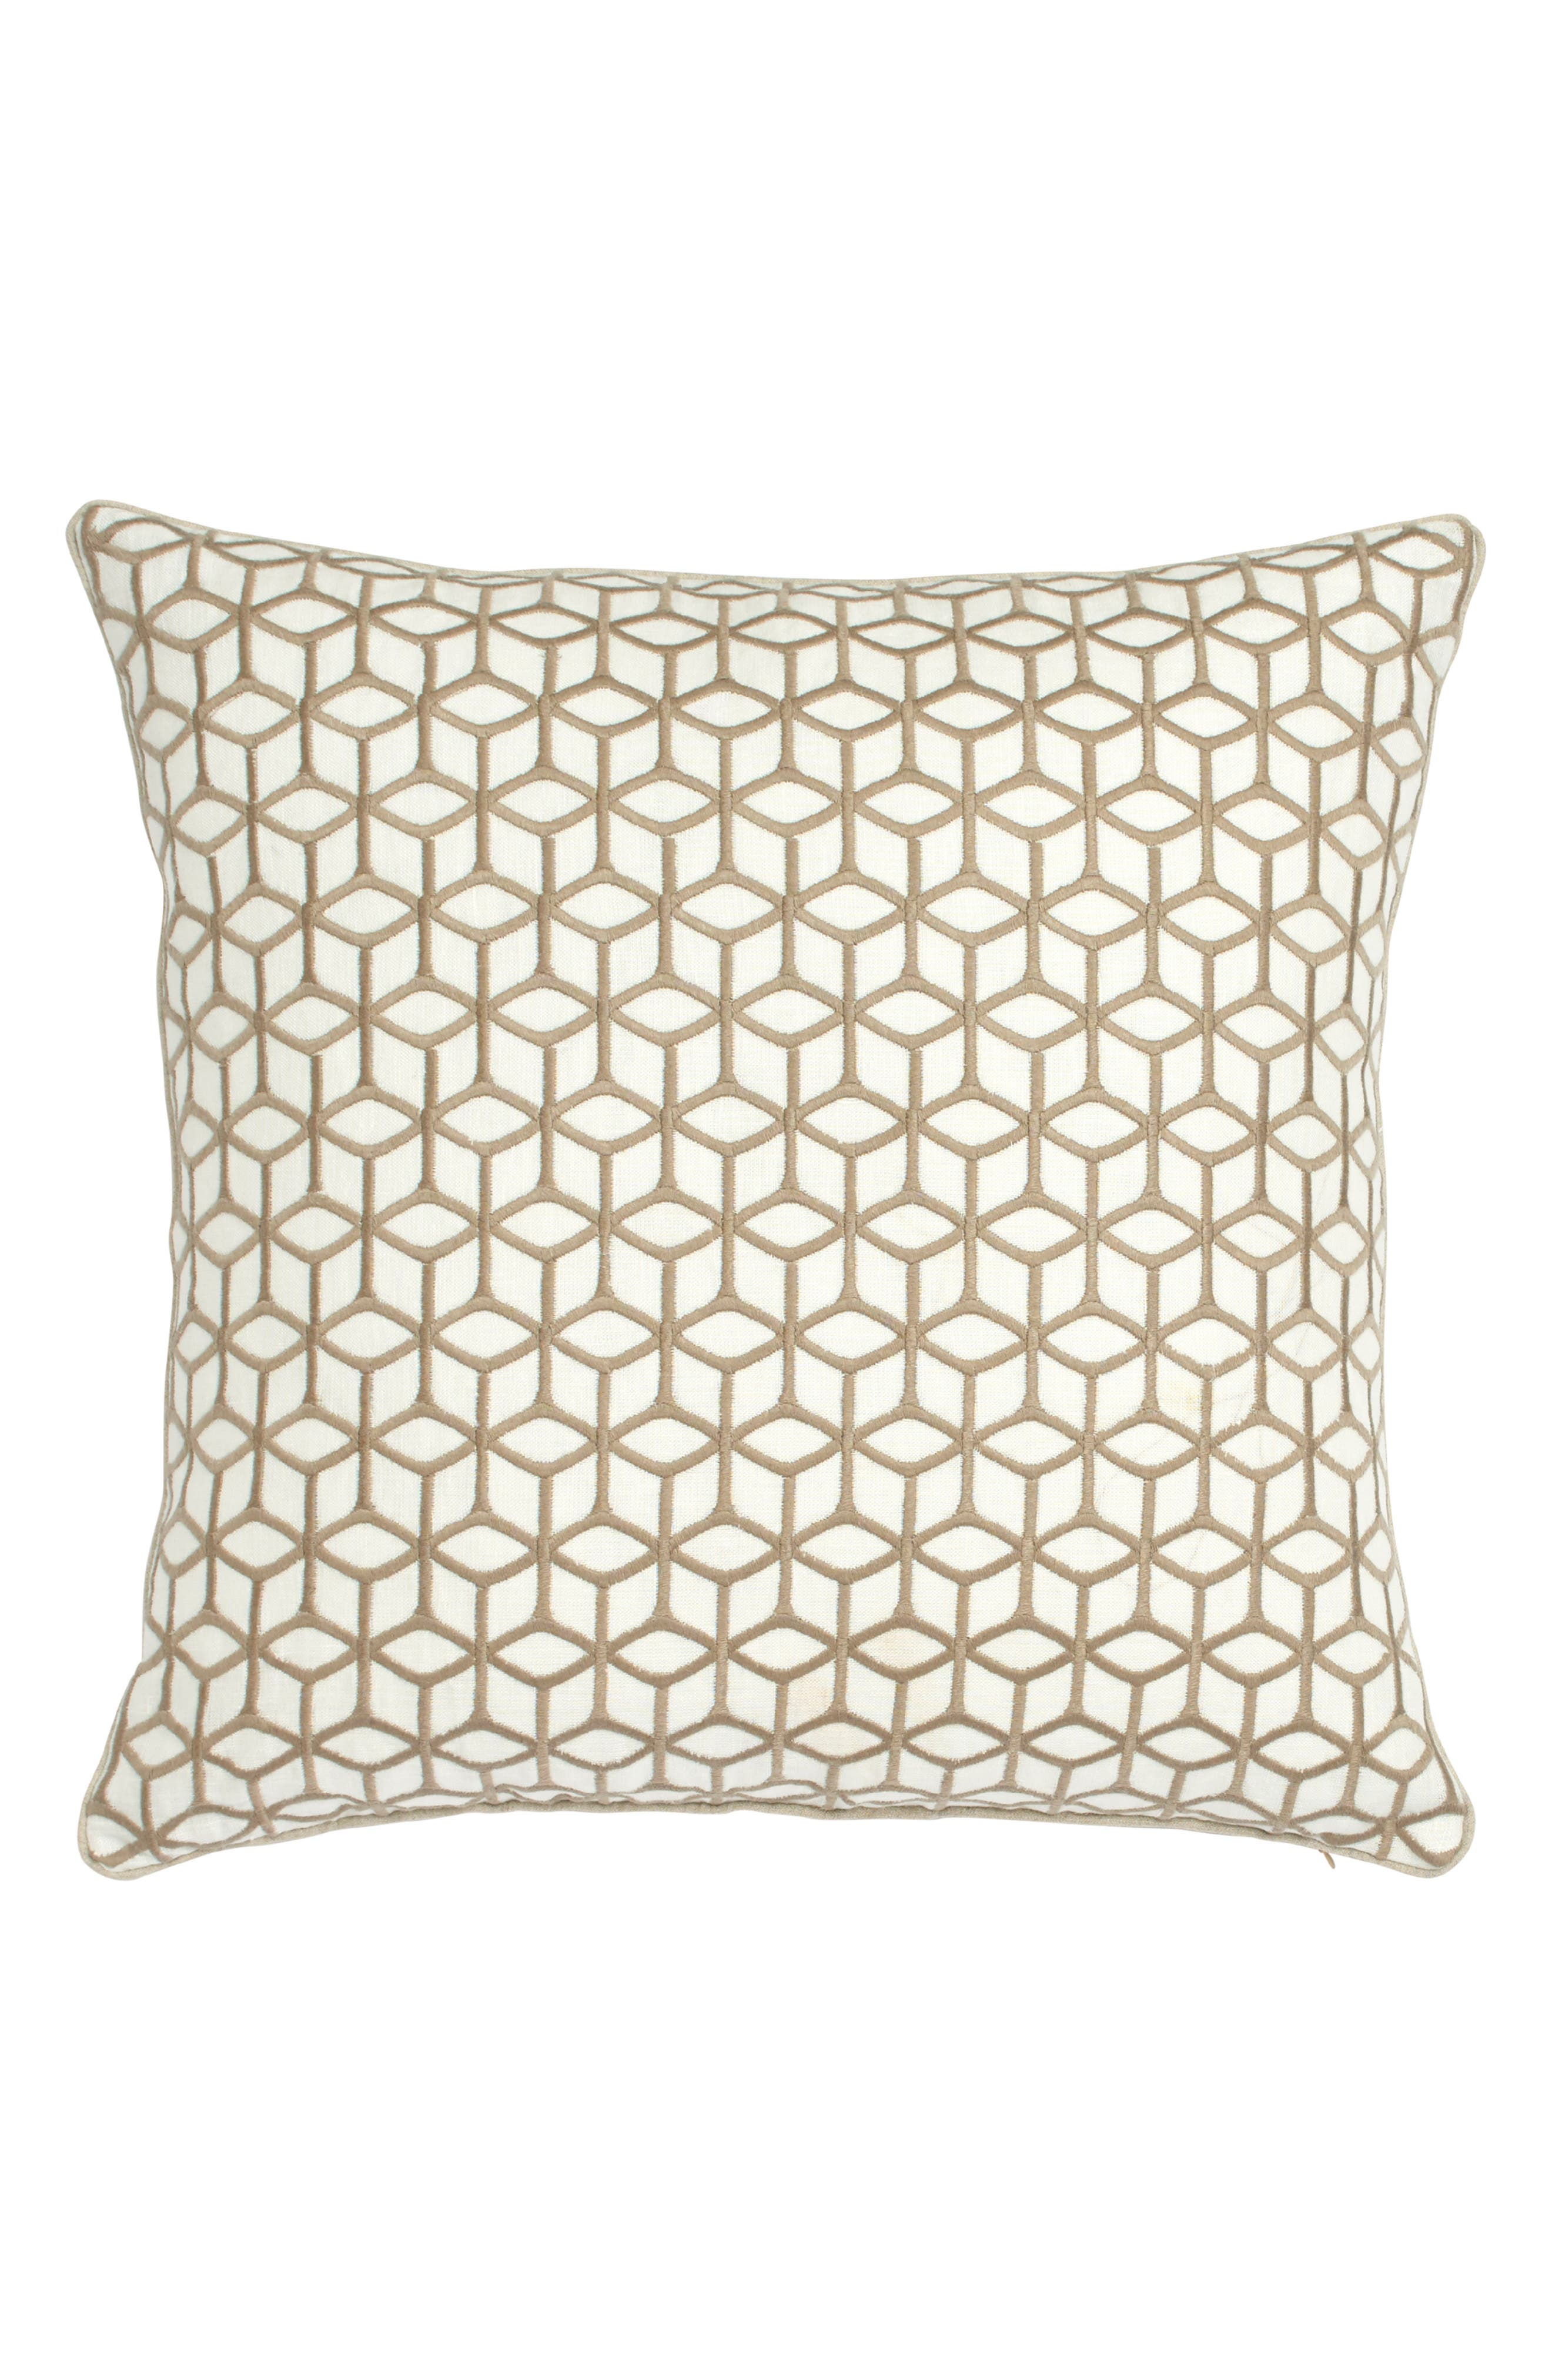 Harlequin Lotus Accent Pillow